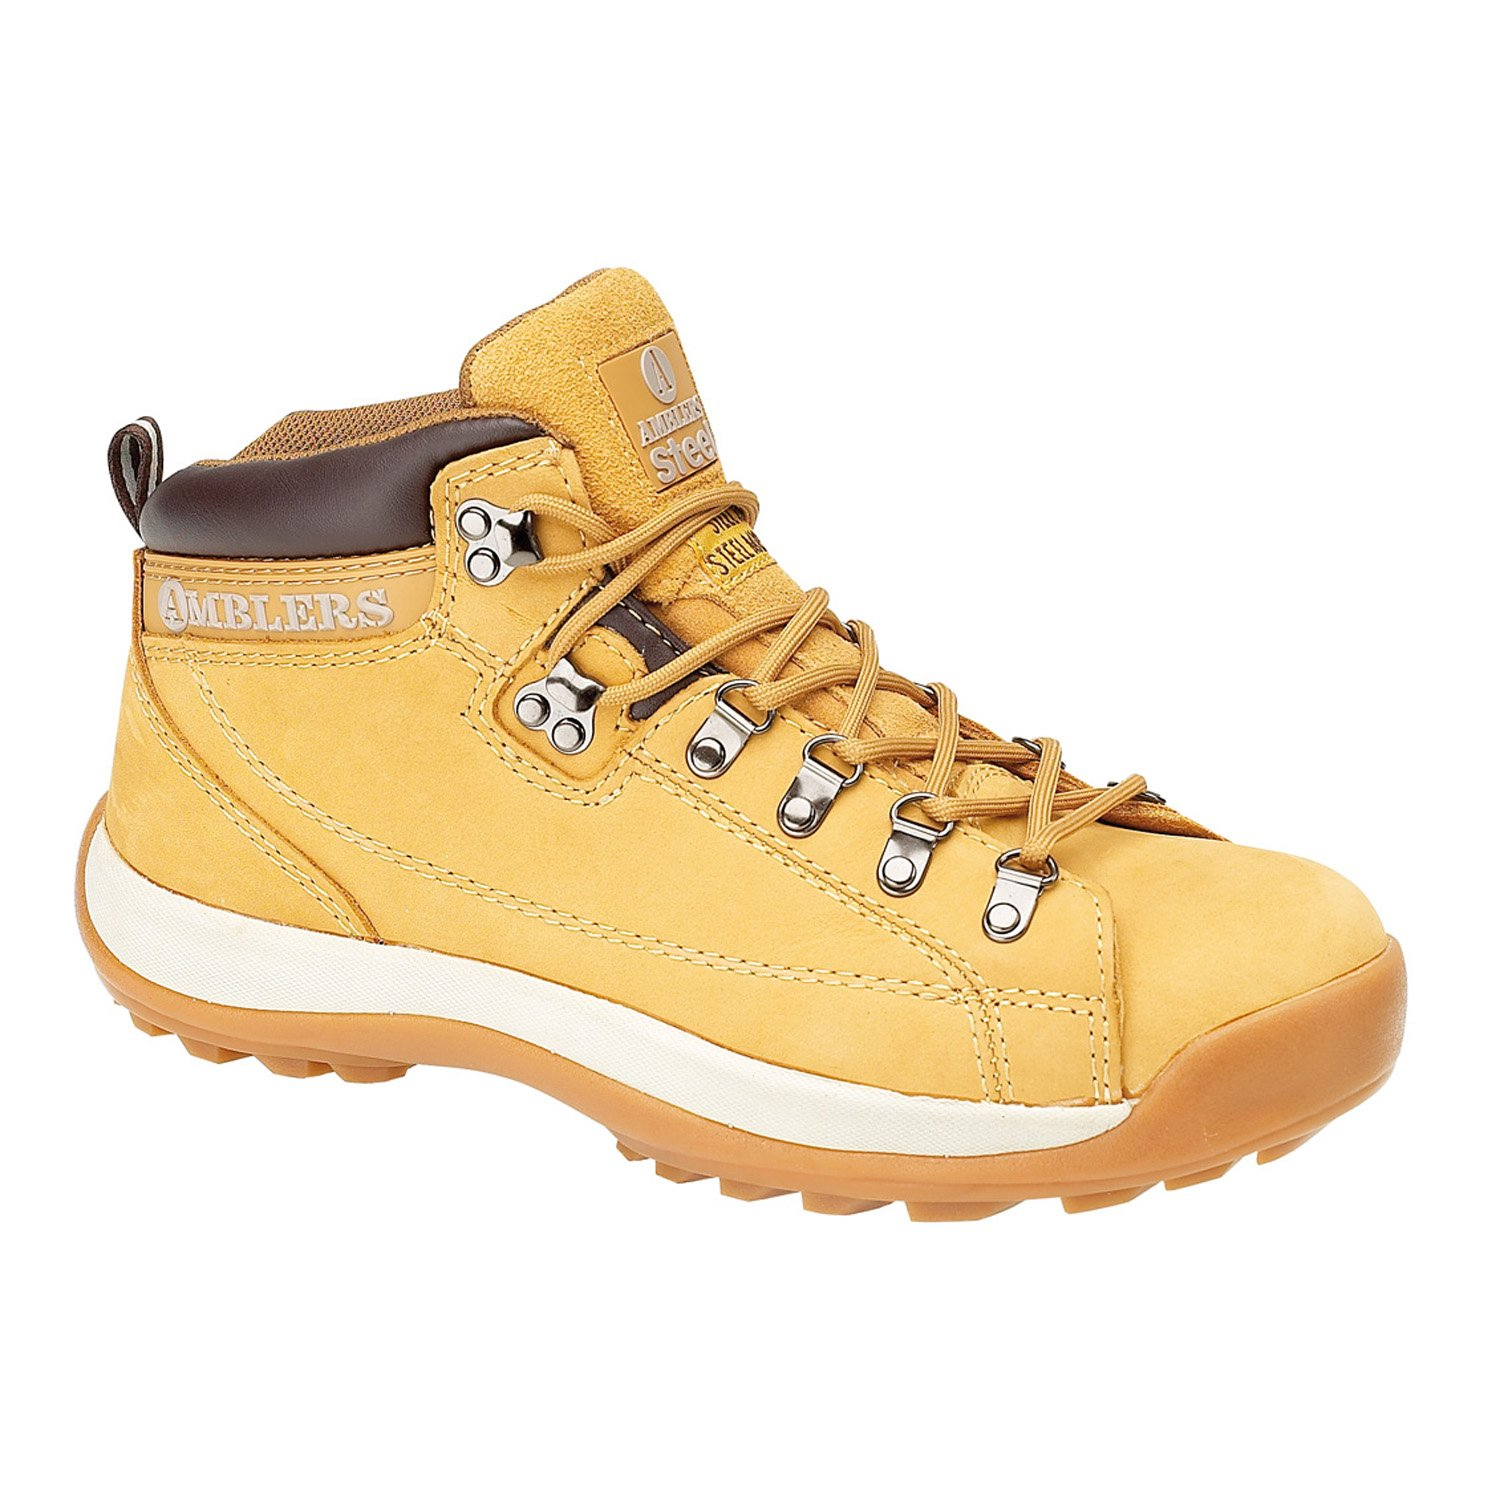 Amblers Ladies FS122 Steel Toe & Midsole Leather Safety Stiefel SB-P-SRA